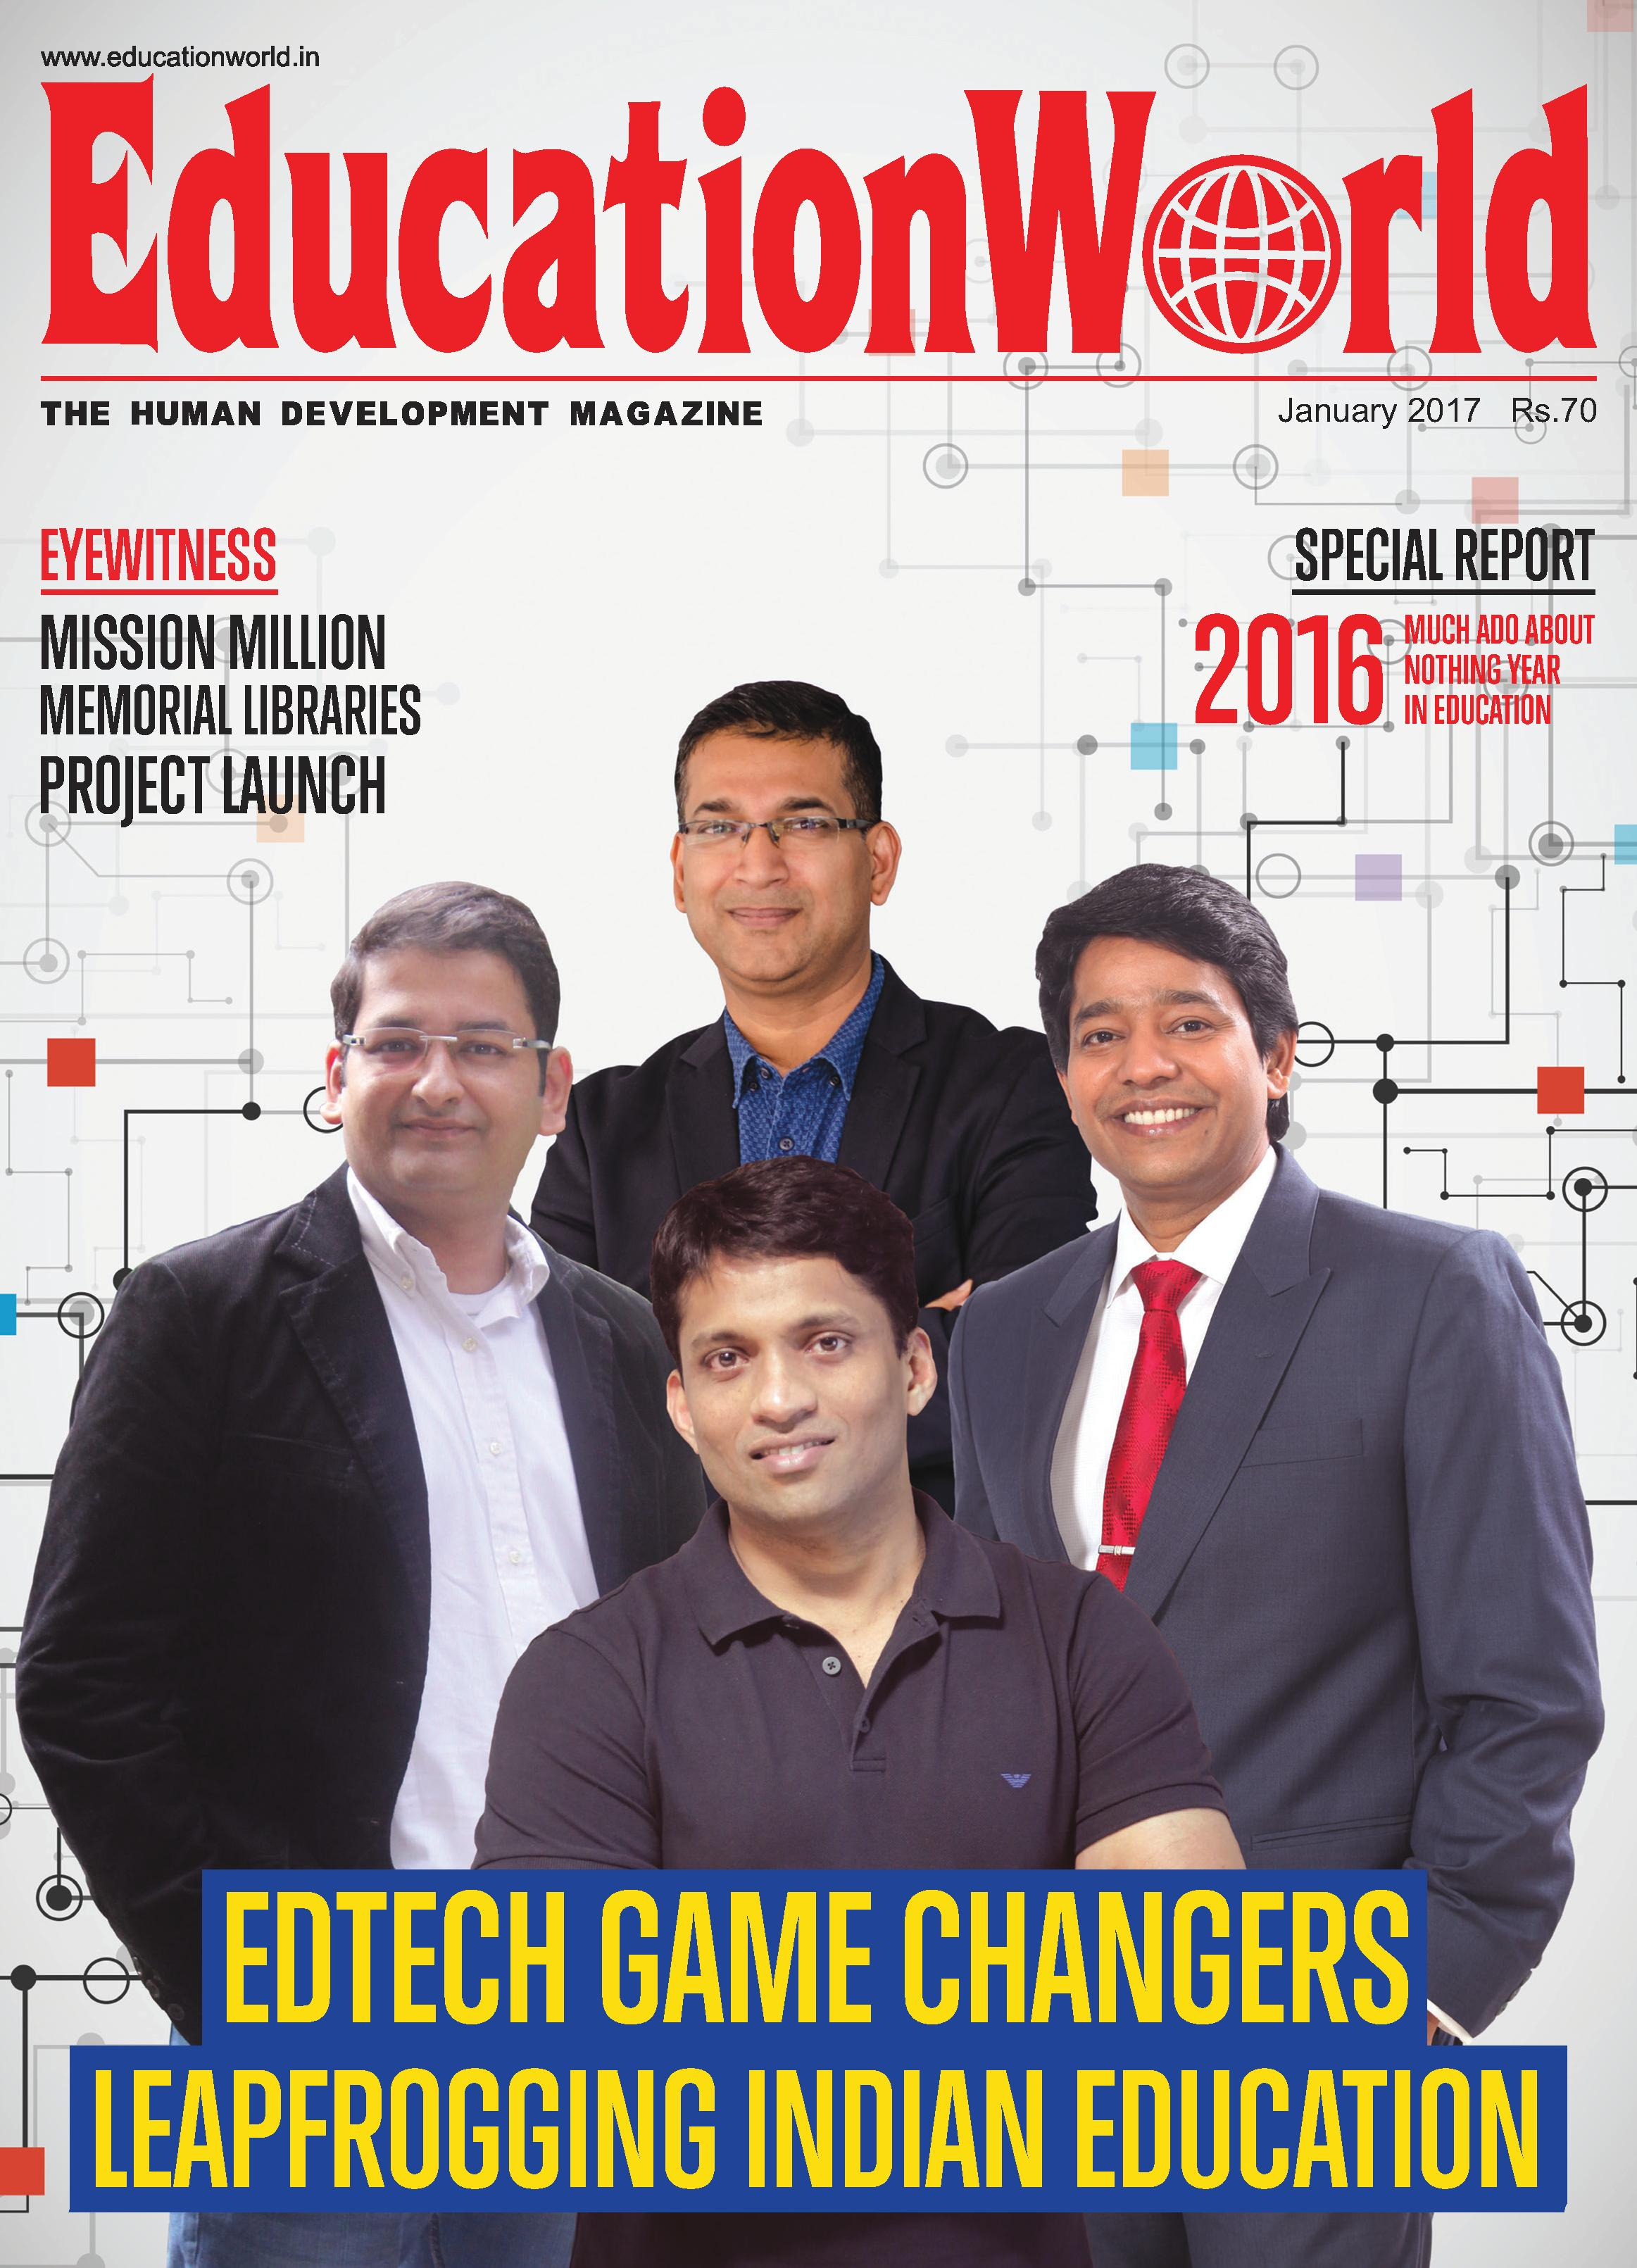 'Edtech Game Changers Leapfrogging Indian Education' featured in Education World Magazine